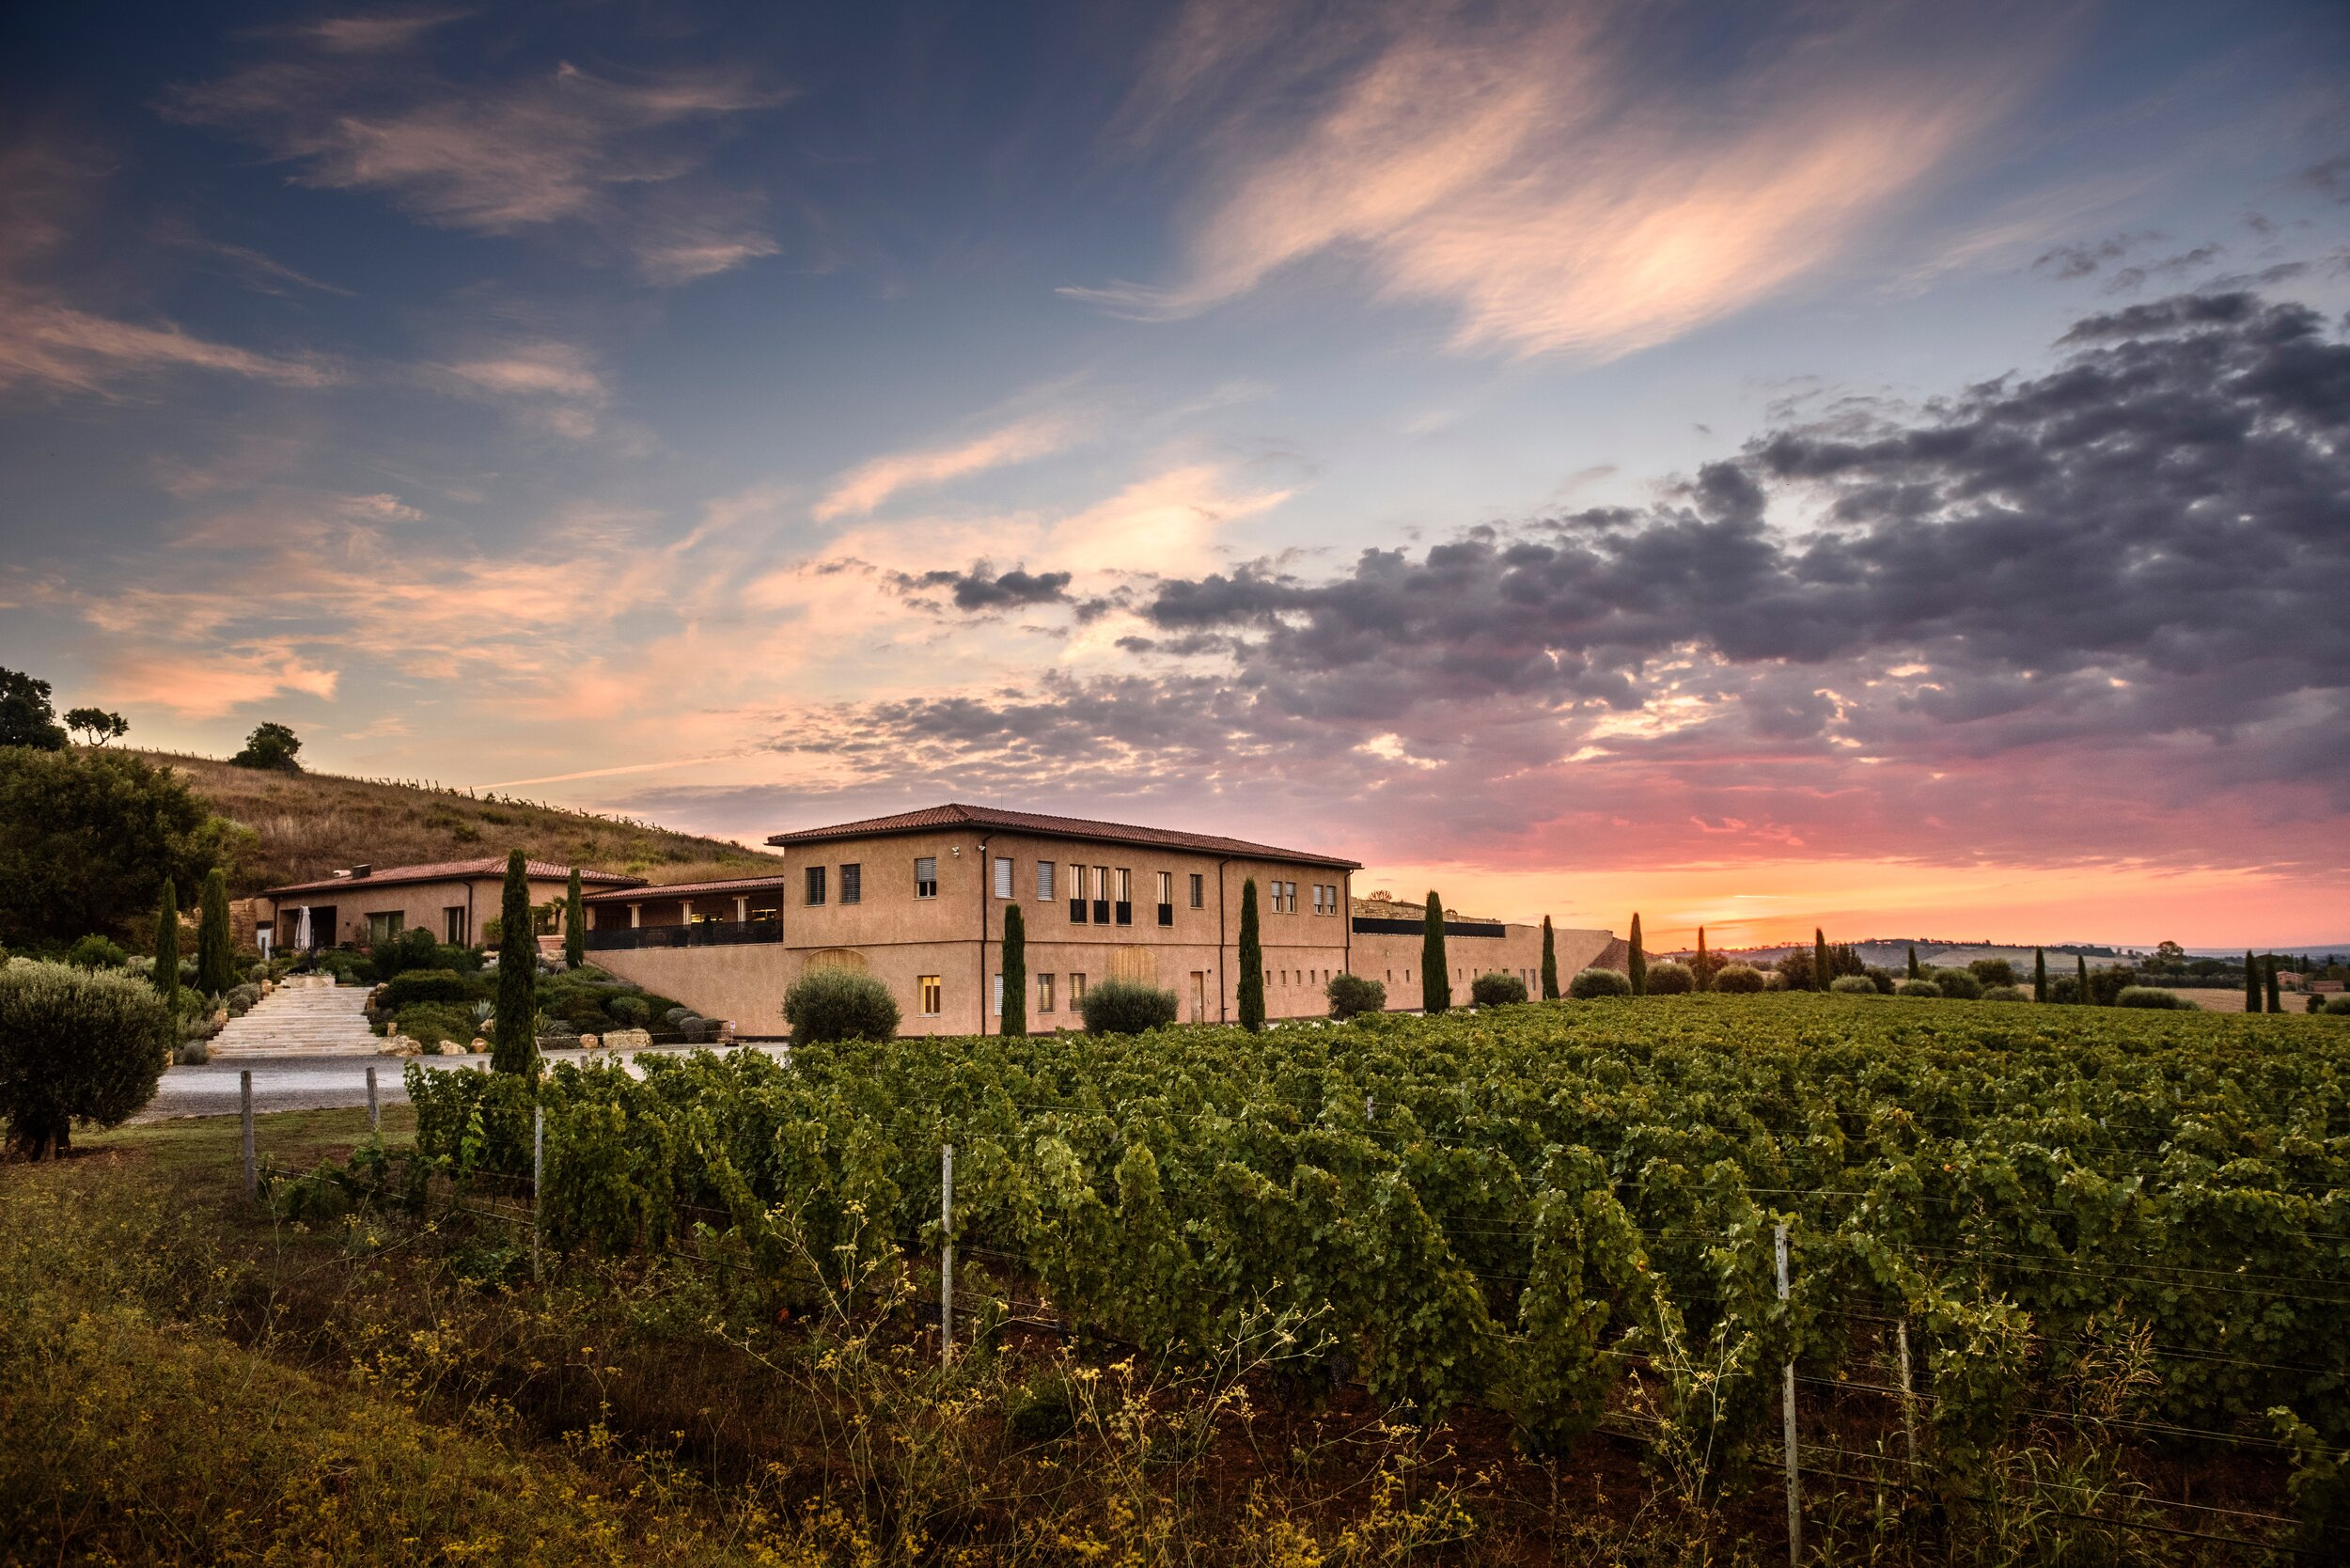 Monteverro Vineyard - An Italian pioneer winery, now at your fingertips. Read full feature here.